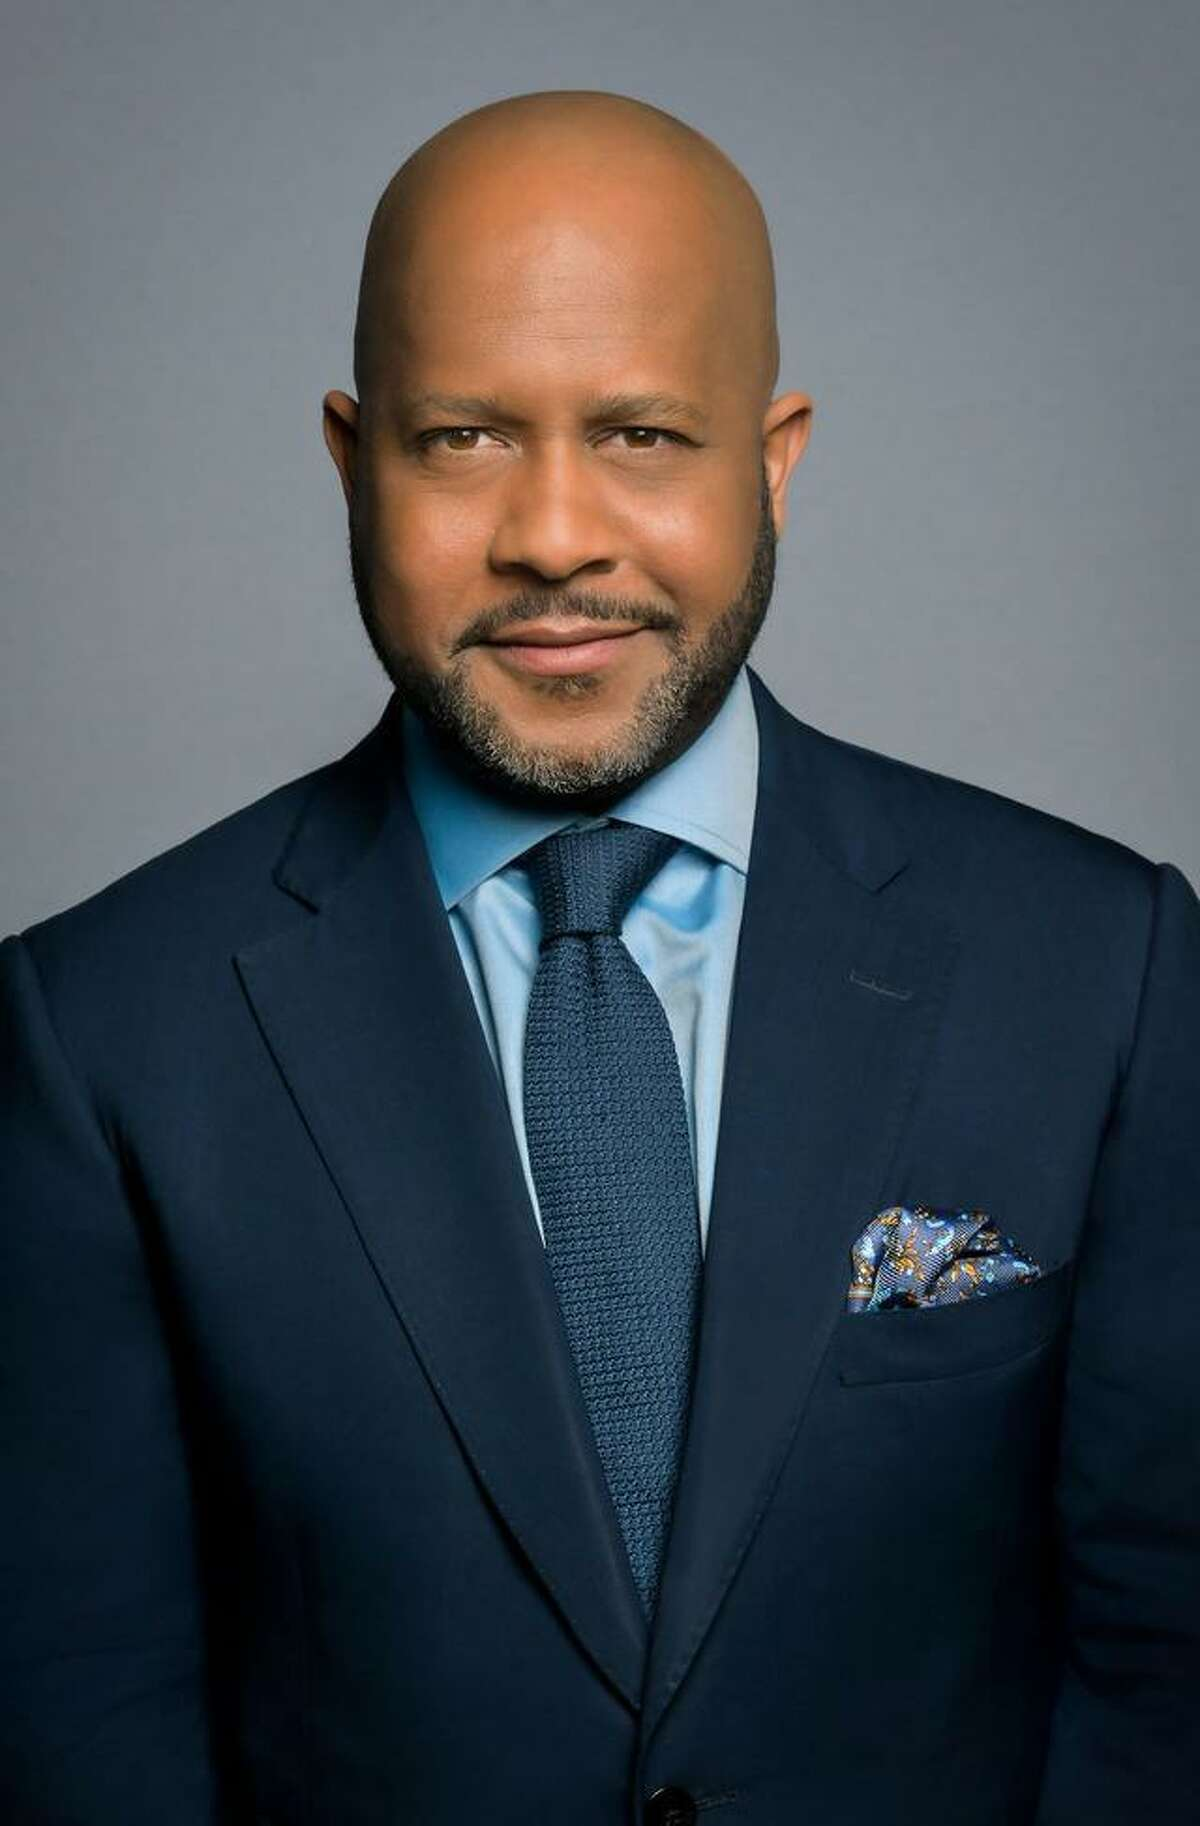 The Westport Library is welcoming CBS News correspondent Jeff Pegues, and the host of